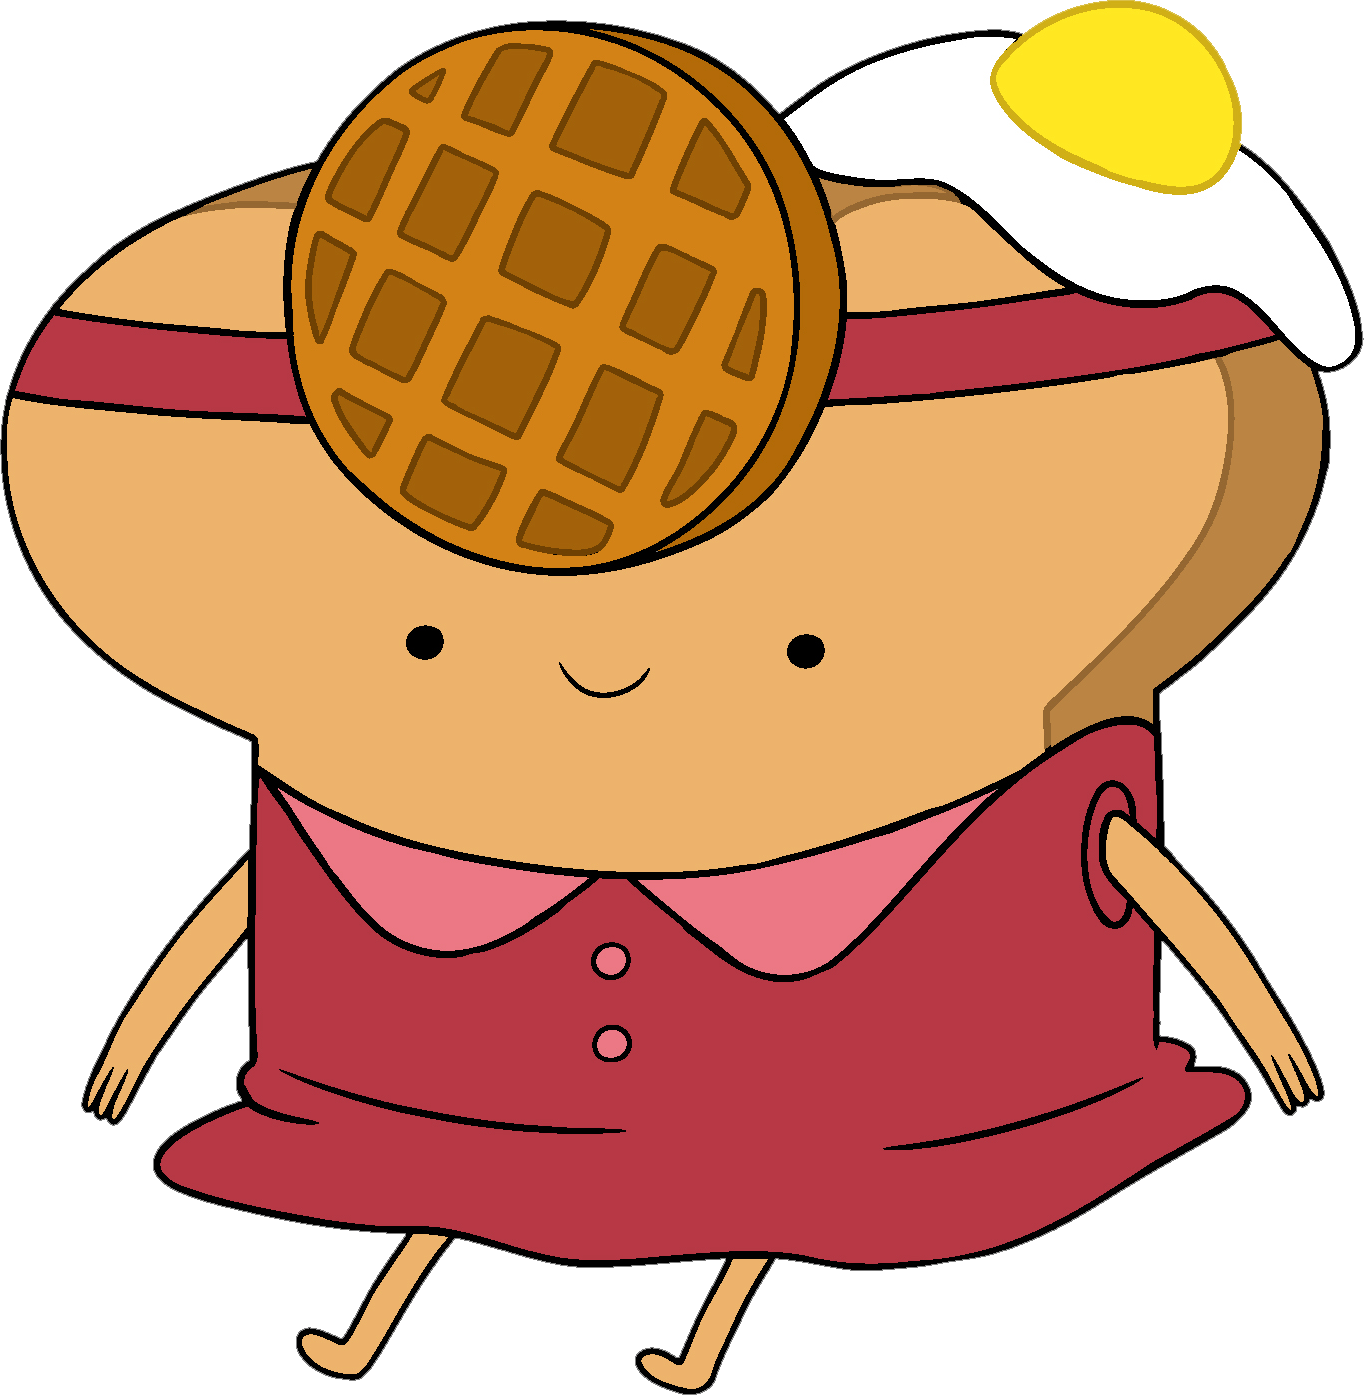 banner free stock Toaster clipart toasted bread. Toast princess adventure time